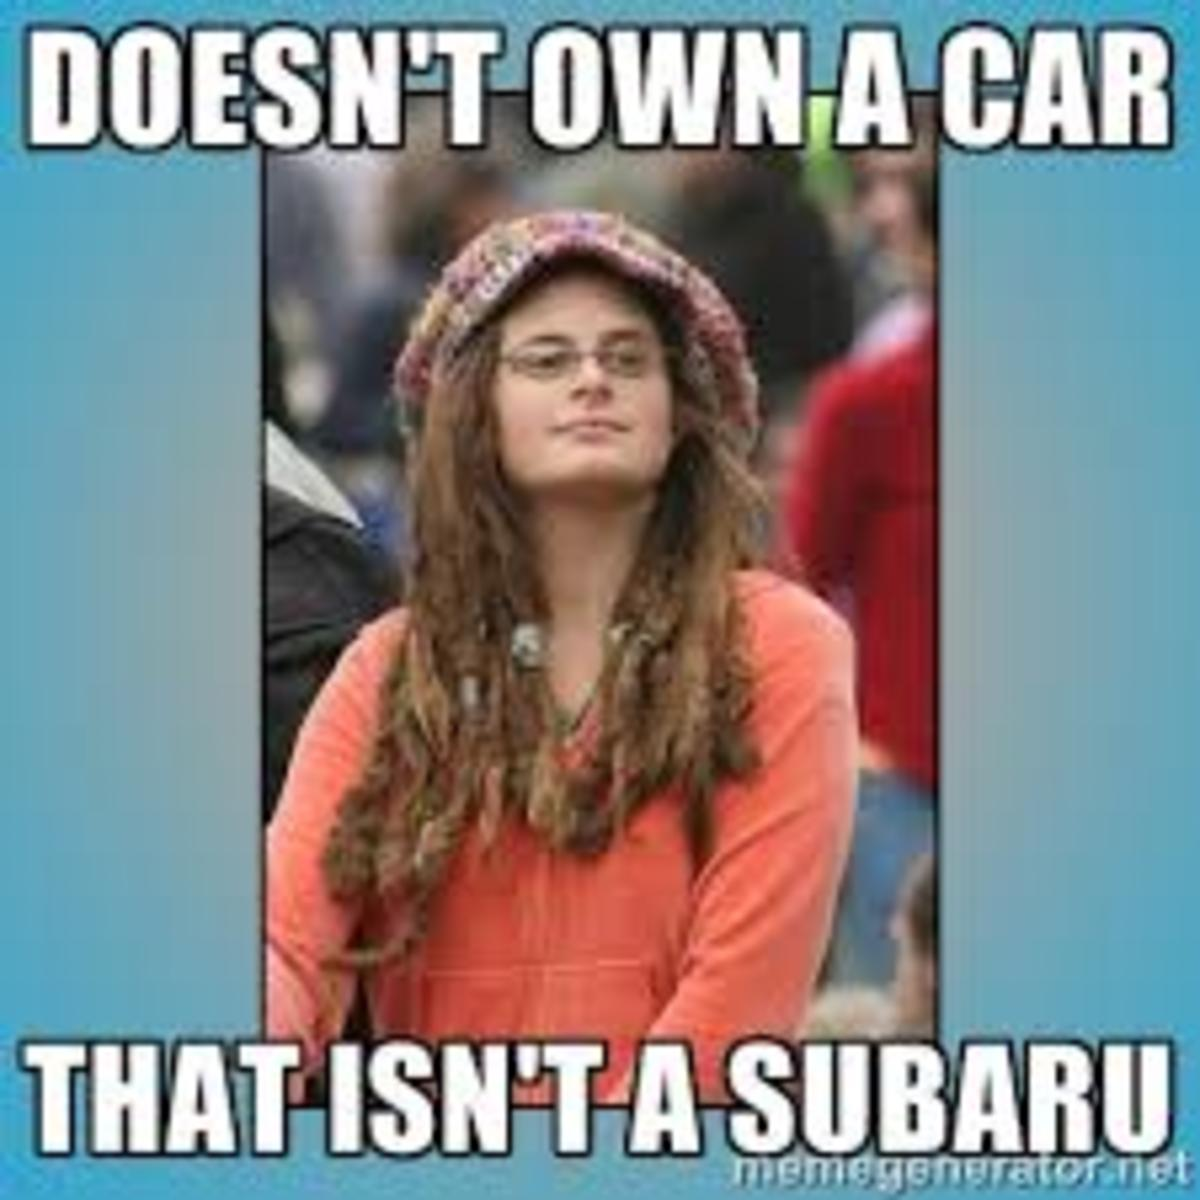 Hippy Subaru Owner